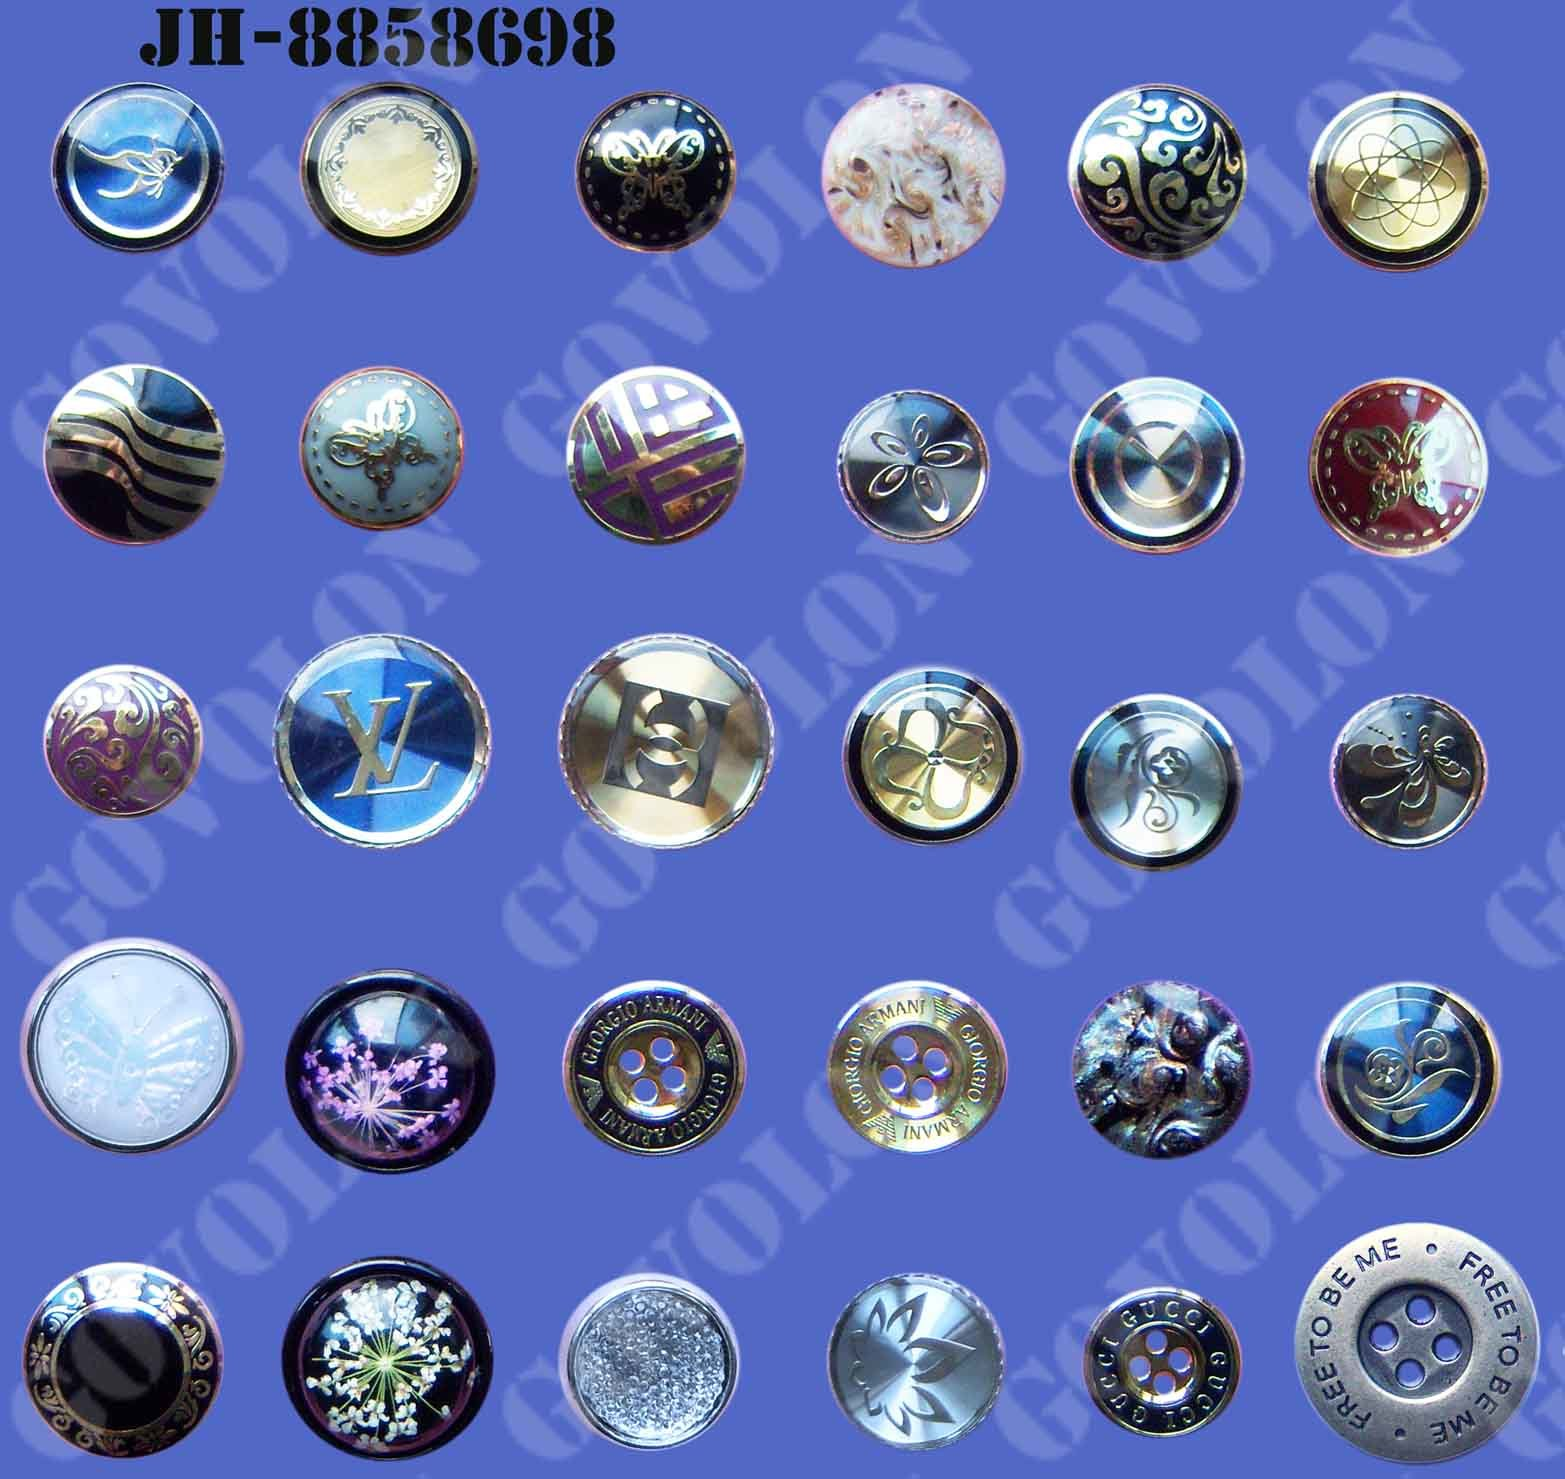 Garment Accessories/Shirt Button/Plastic Button/Metal Button